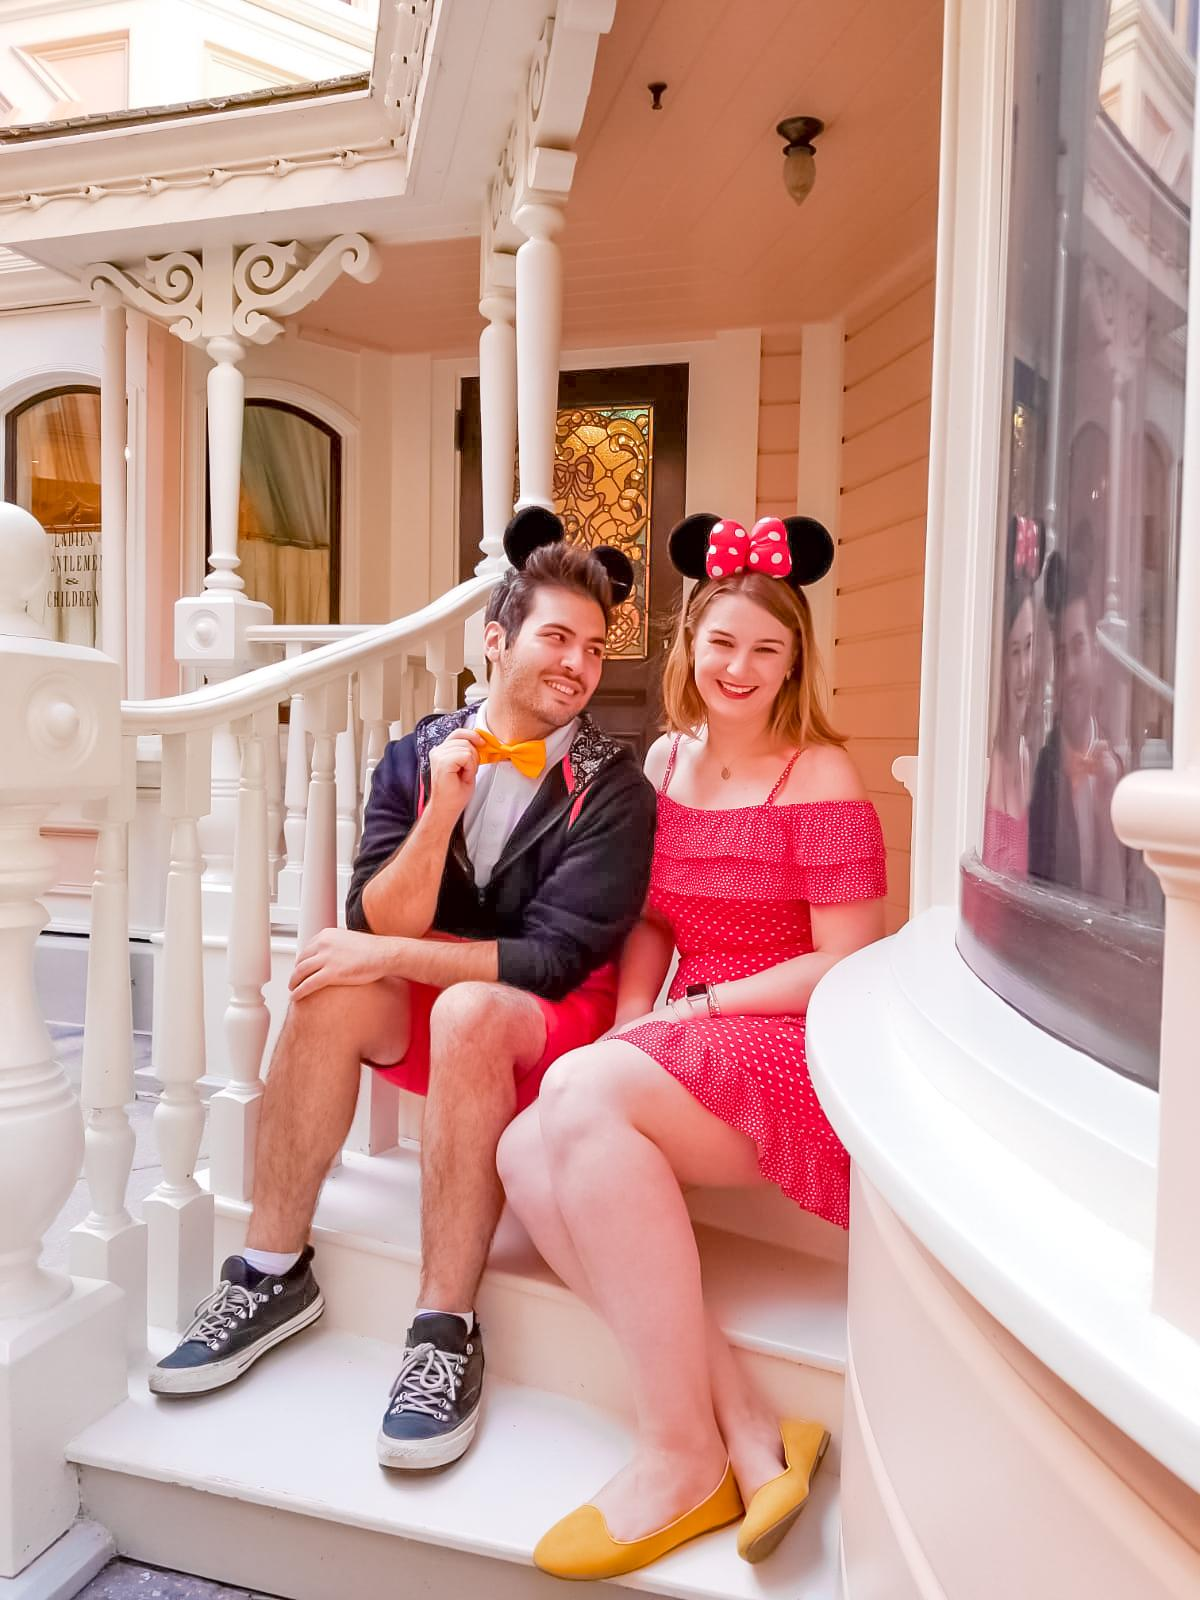 Mickey and minnie at the pink porch - one of the most Instagrammable spots at Disneyland Paris